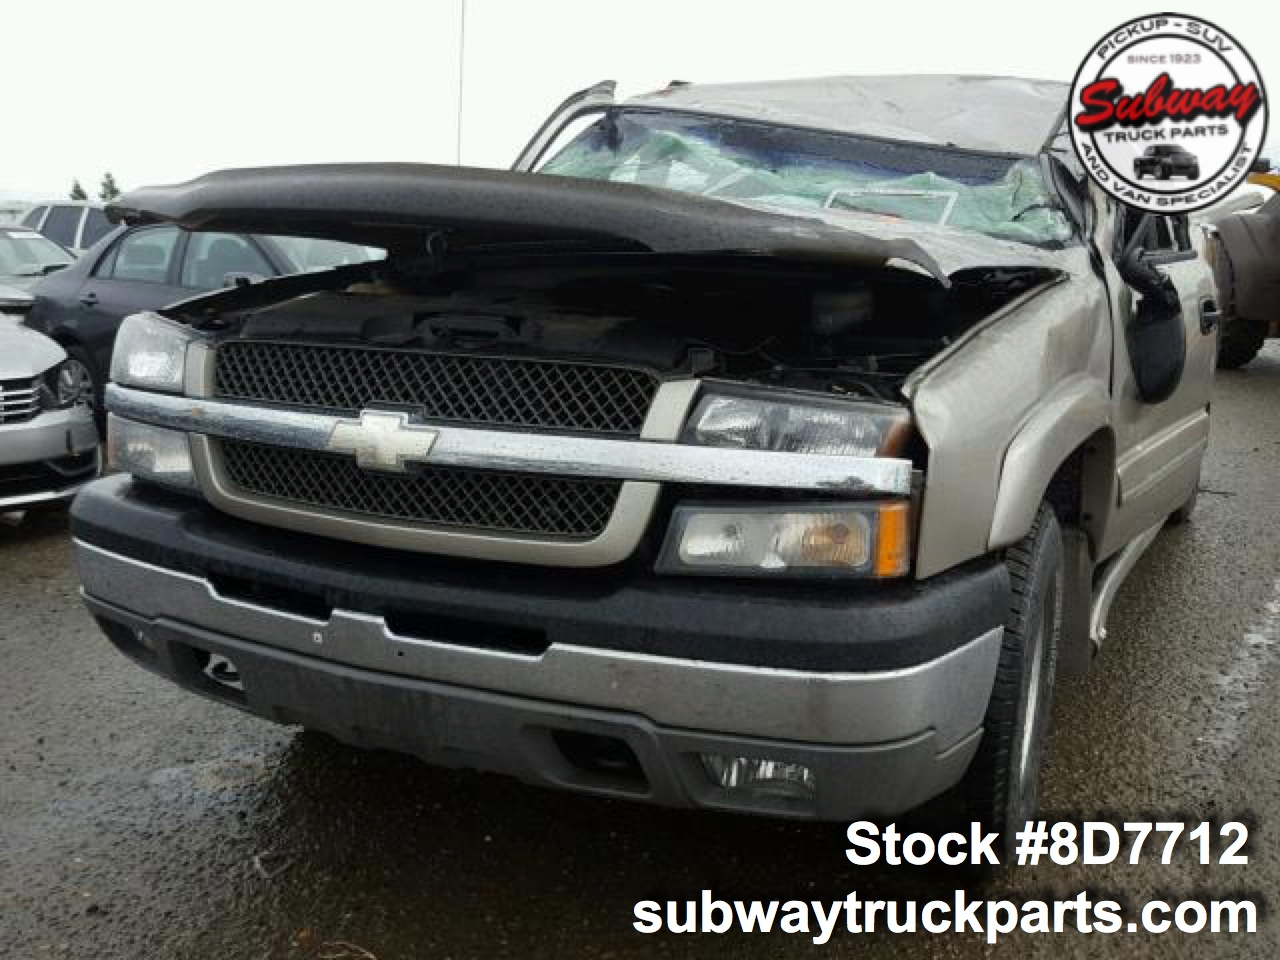 Used Parts 2003 Chevy Silverado 1500